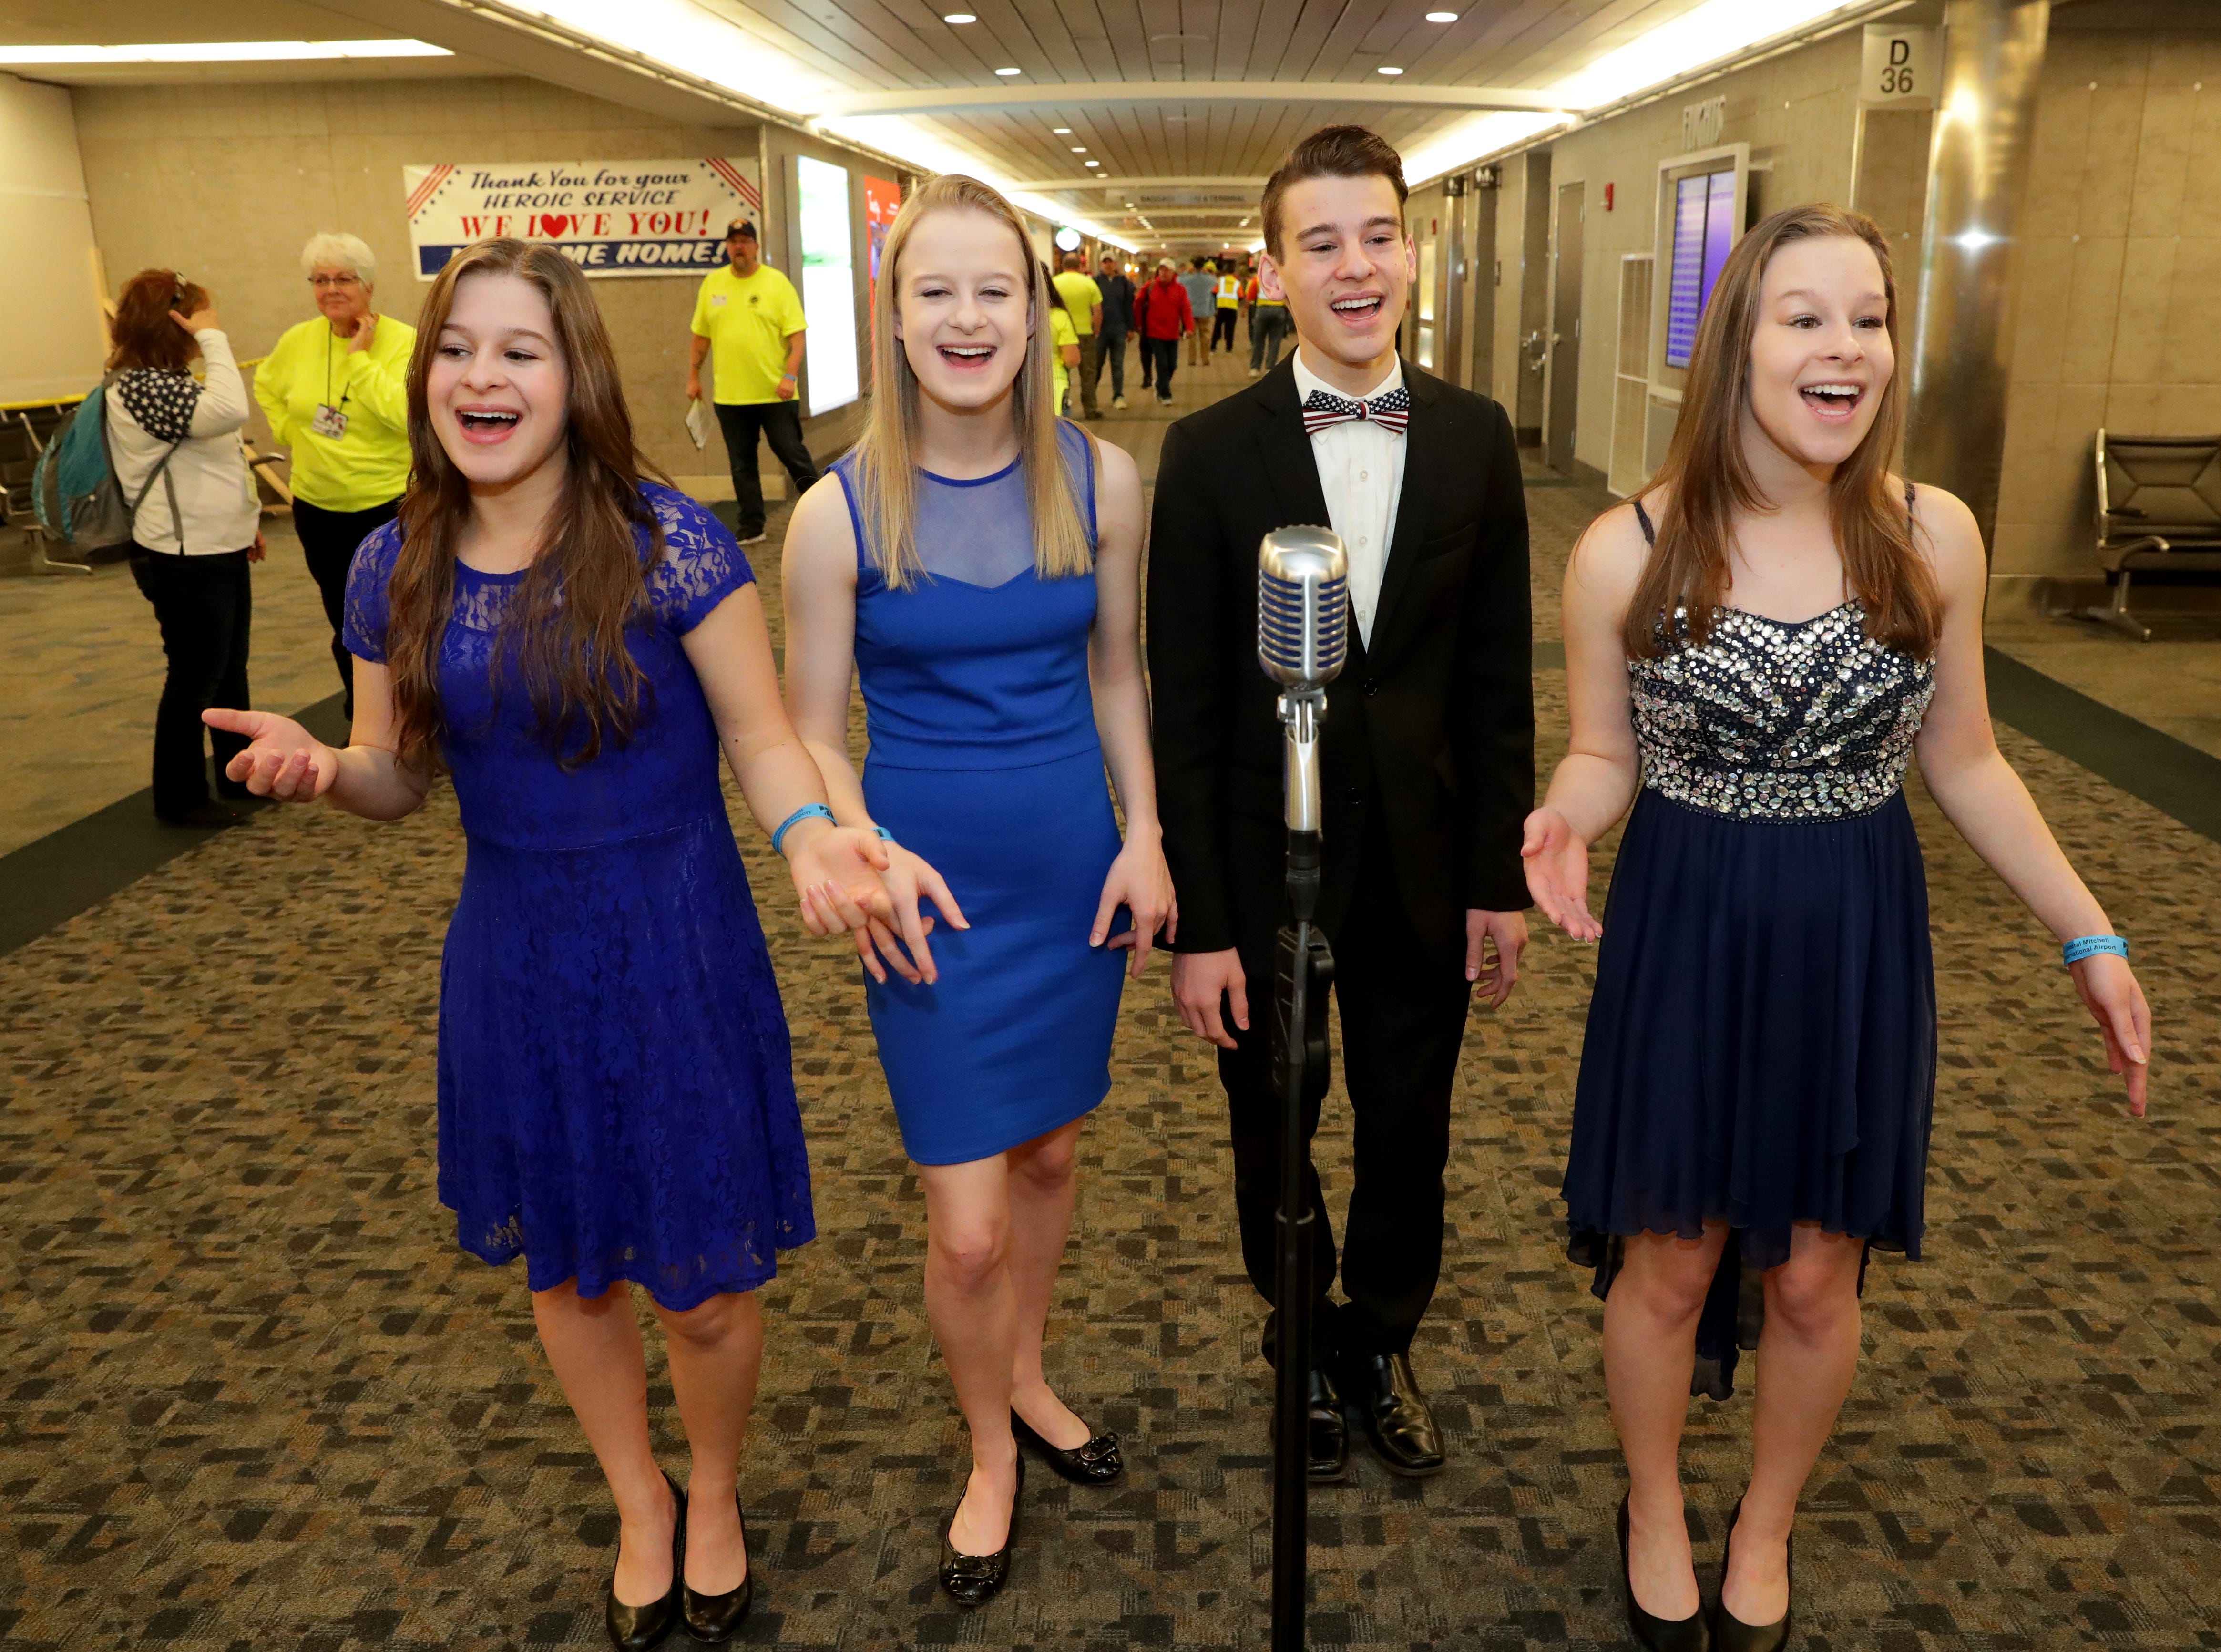 The quadruplet quartet singing group Vintage Mix from Waukesha sent off the veterans with a performance. The singers are Julia Shoppach (from left), Anika Shoppach, Ian Shoppach, and Kelsey Shoppach. The family has been performing for honor flight sendoffs since 2014.